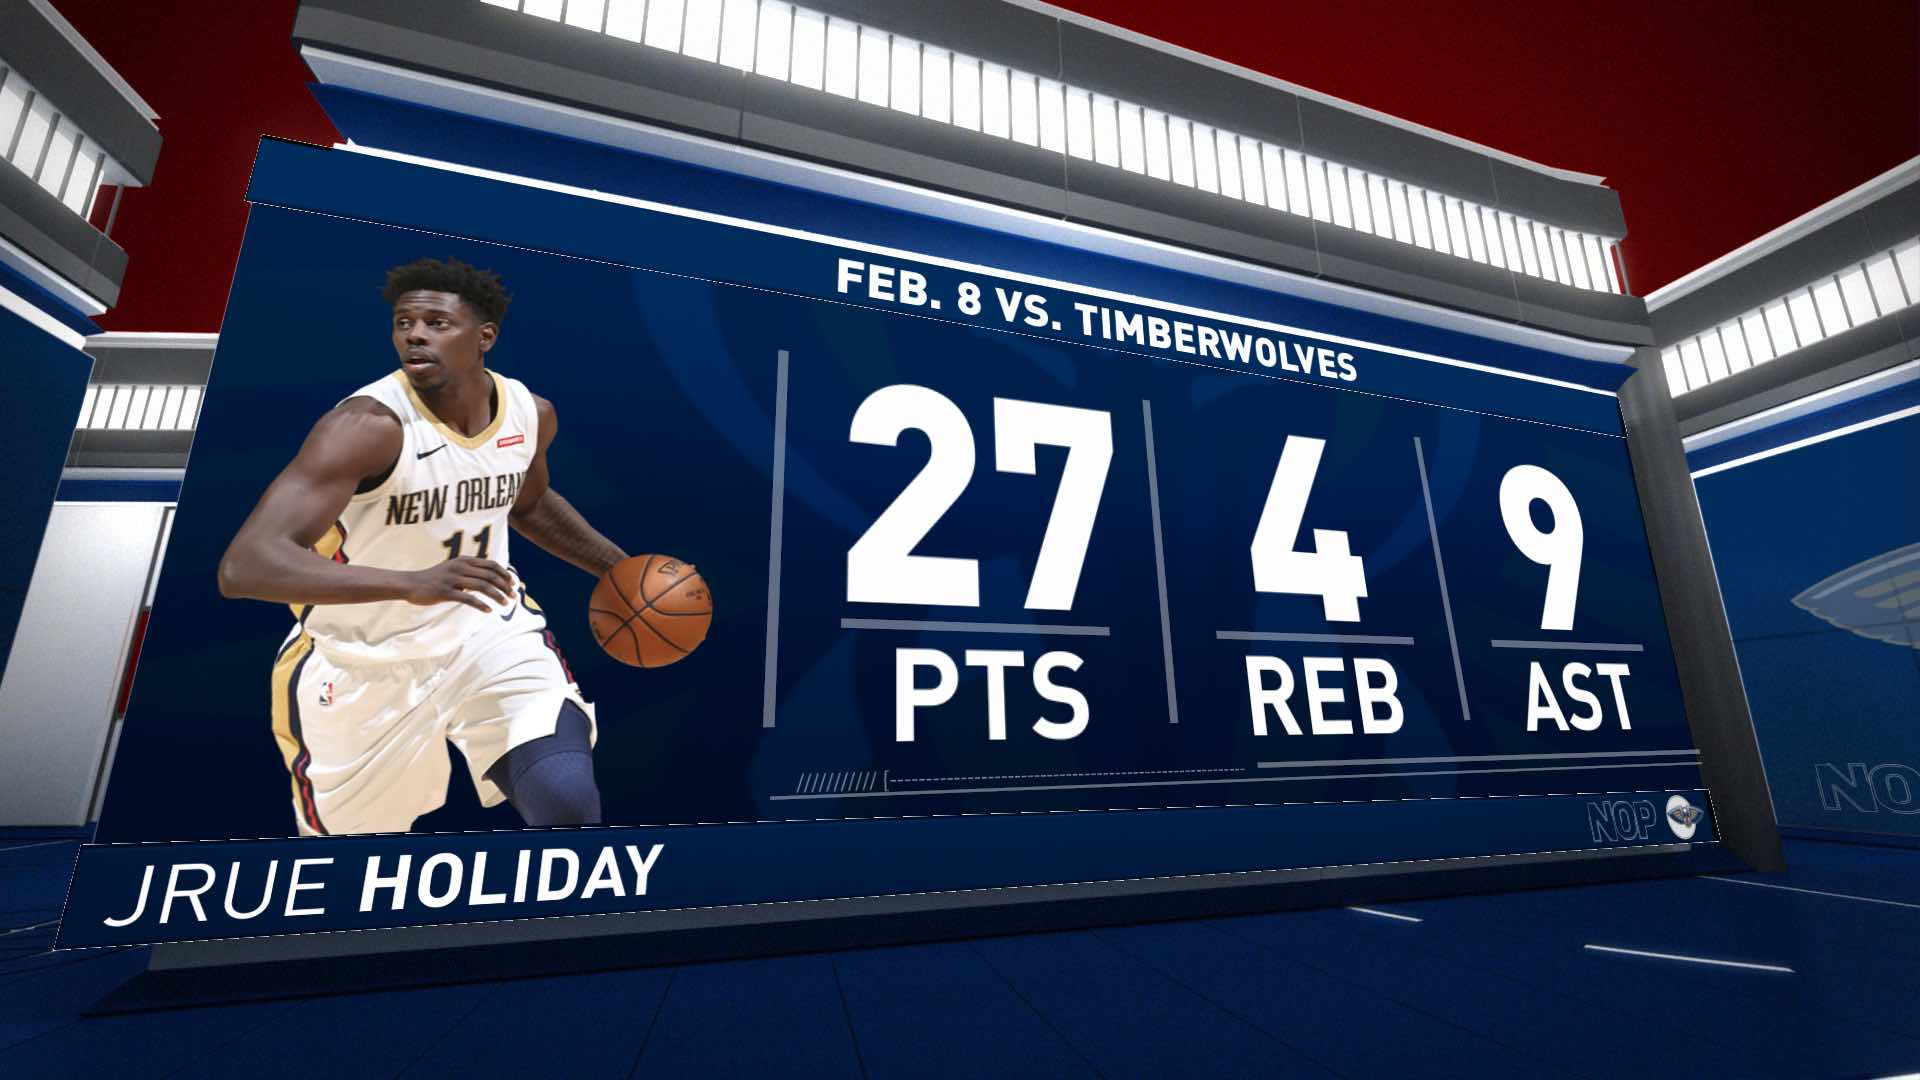 Highlights: Jrue Holiday | Timberwolves vs. Pelicans